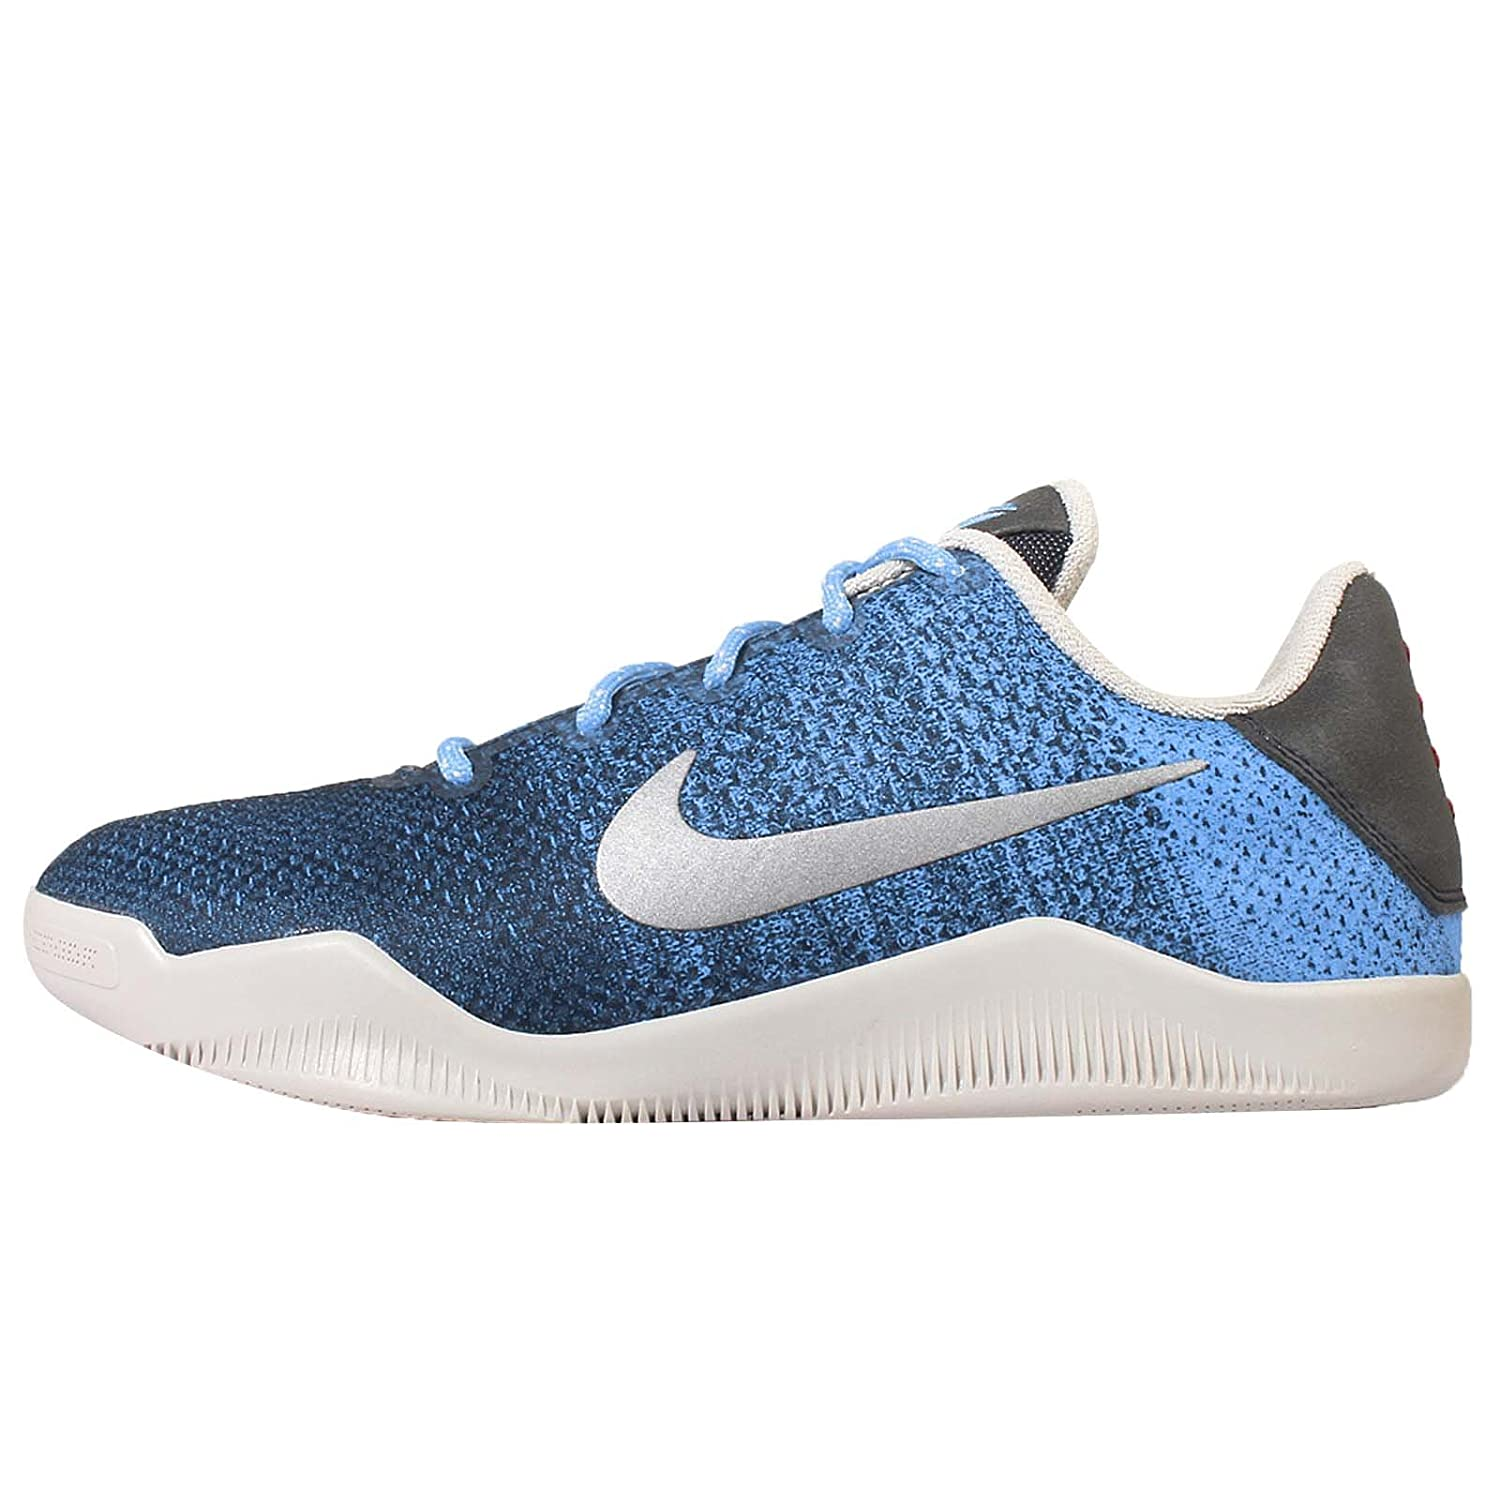 quality design 59c8d 614a1 Nike Kobe XI (GS) Basketball Trainers 822945 Sneakers Shoes